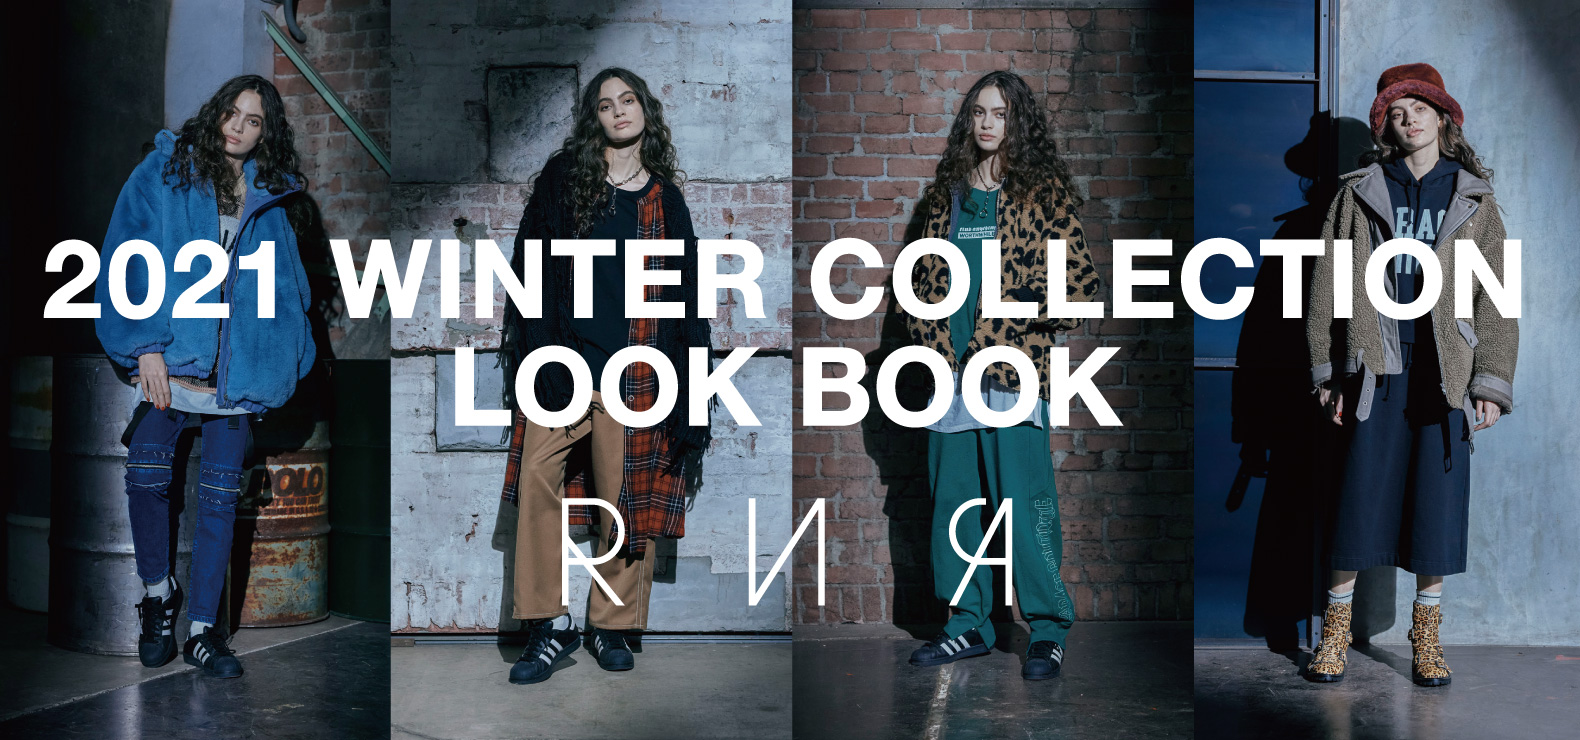 2021 WINTER COLLECTION LOOK BOOK